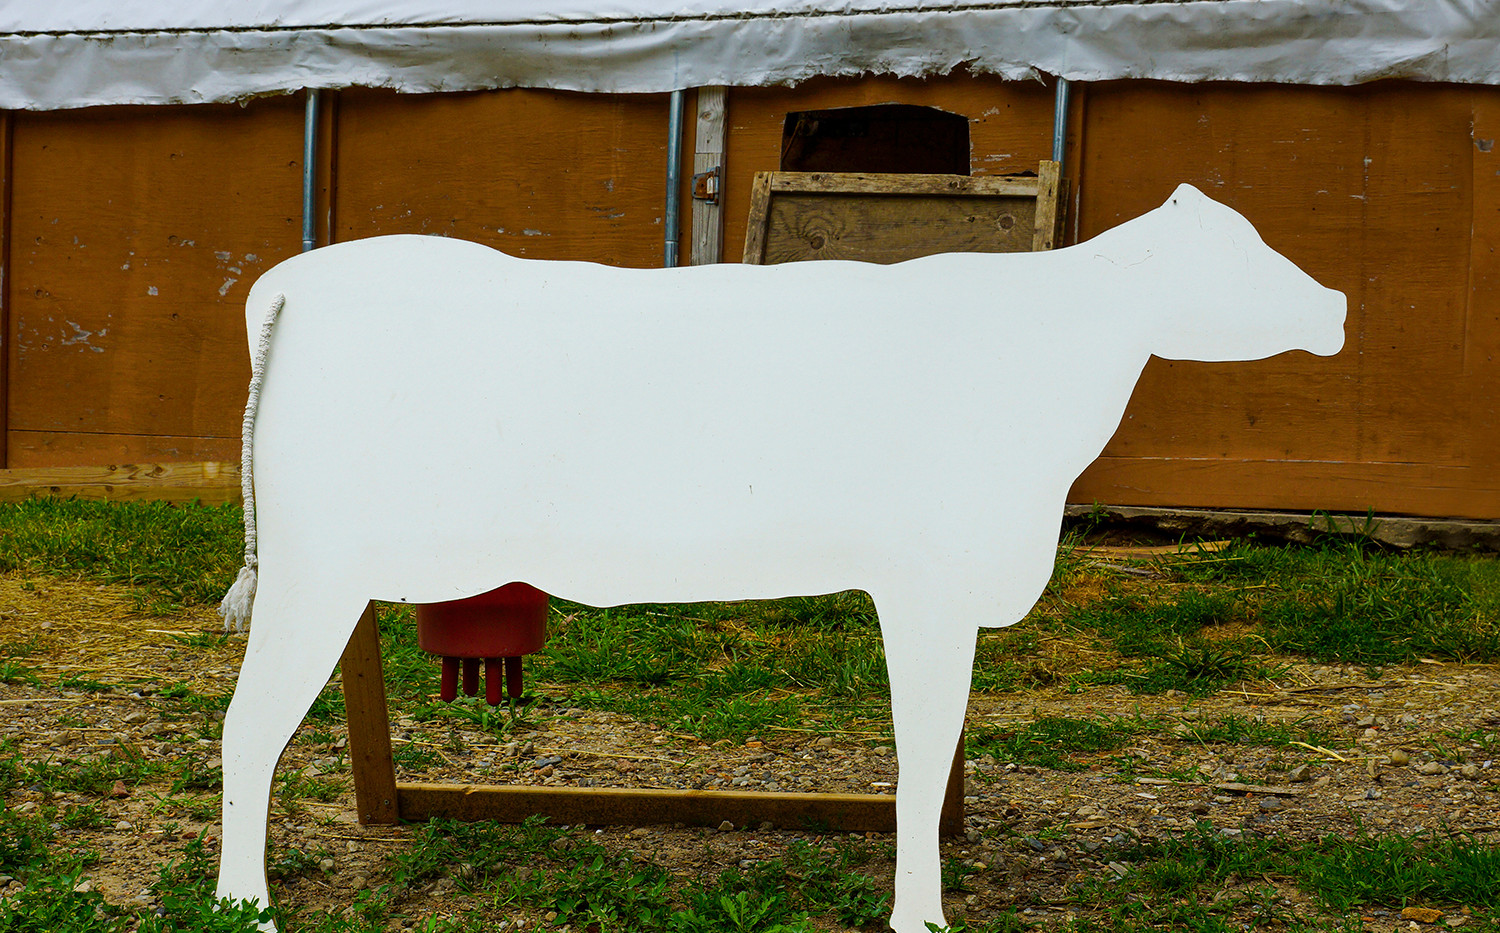 Fake cow, North fork, Long Island